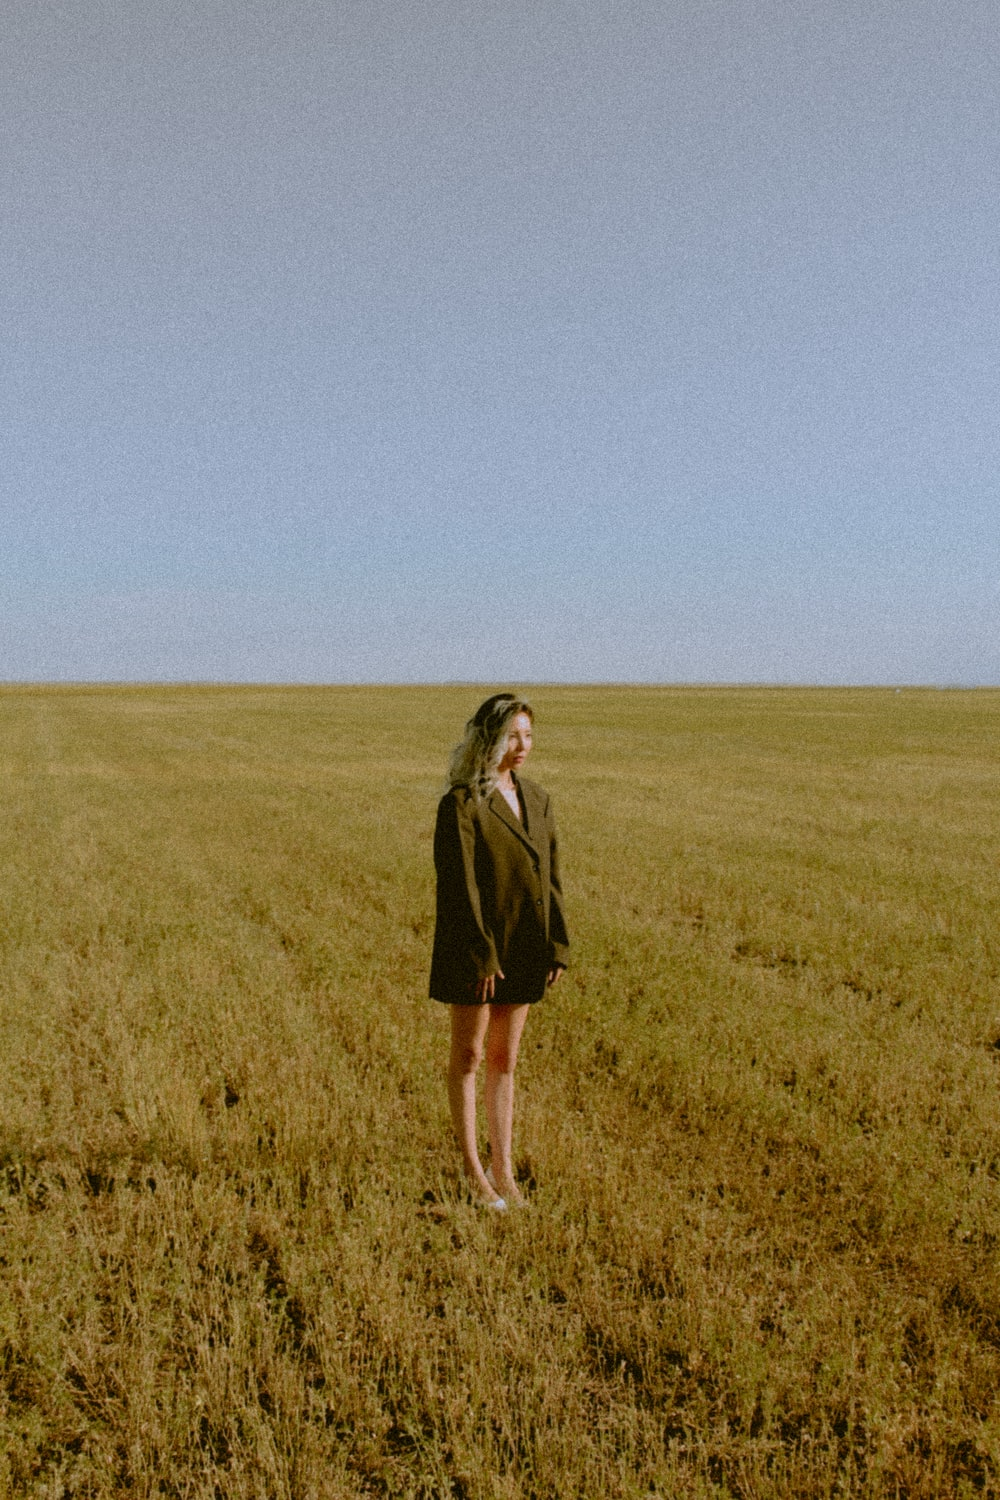 woman in black coat standing on green grass field during daytime